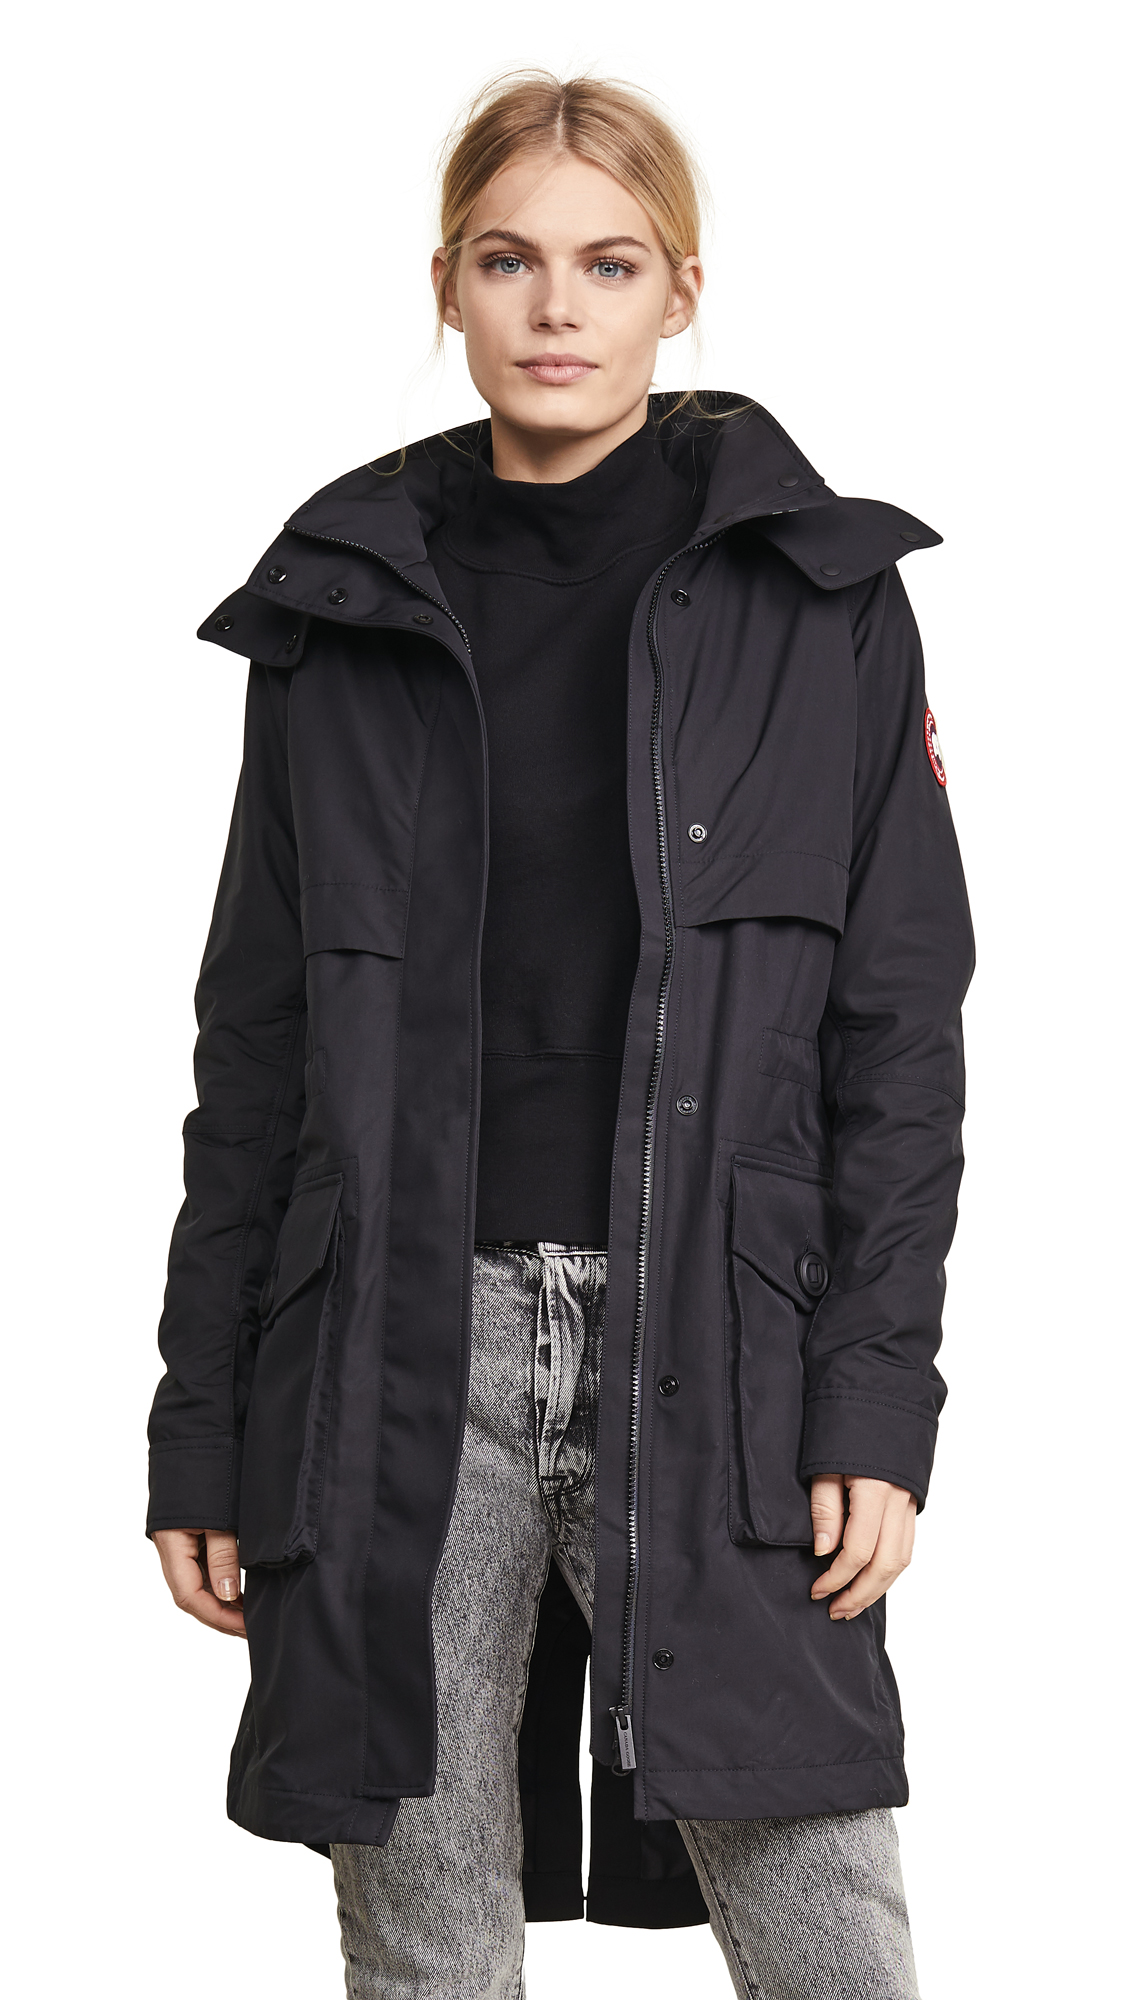 Buy Canada Goose Cavalry Trench Coat online beautiful Canada Goose Jackets, Coats, Trench Coats